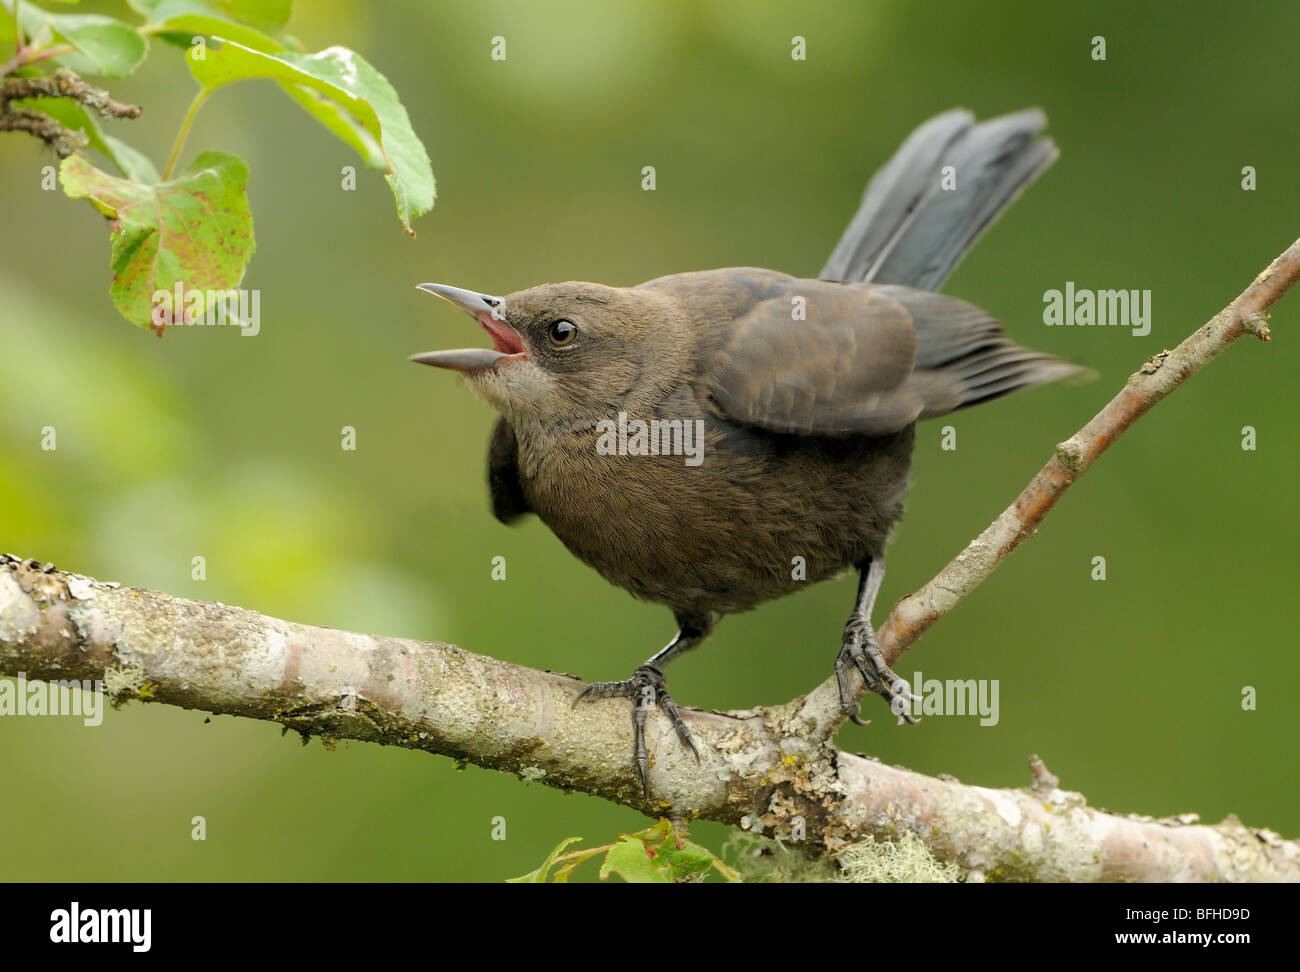 Juvenile Brewer's Blackbird begging for food - Victoria BC, Canada - Stock Image